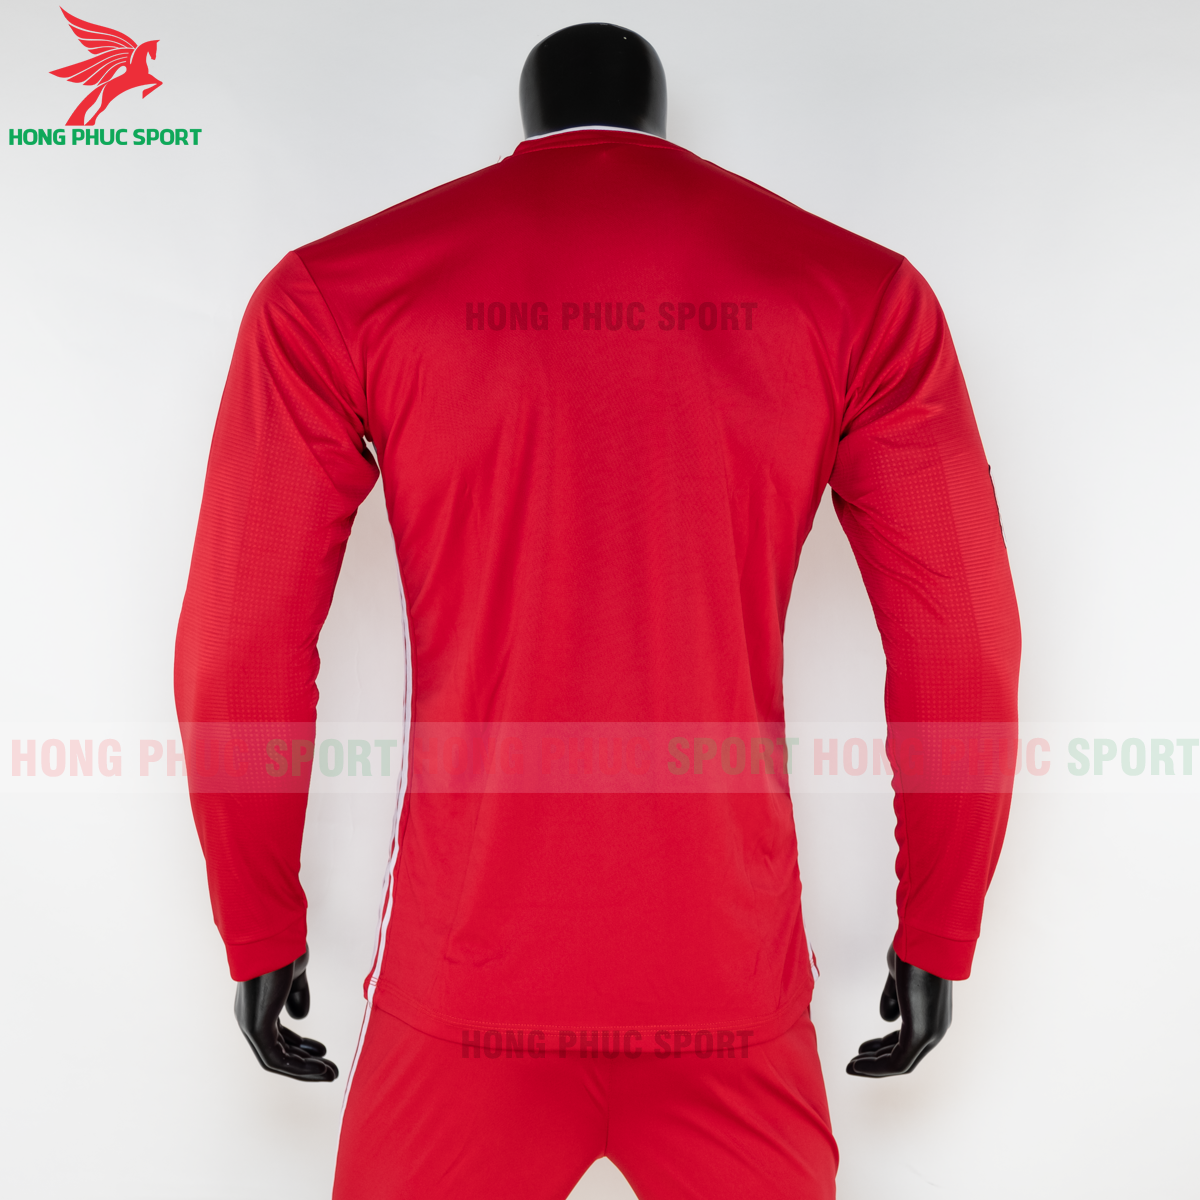 https://cdn.hongphucsport.com/unsafe/s4.shopbay.vn/files/285/ao-dai-tay-bayern-munich-2020-san-nha-7-5f8fba07b8fa4.png